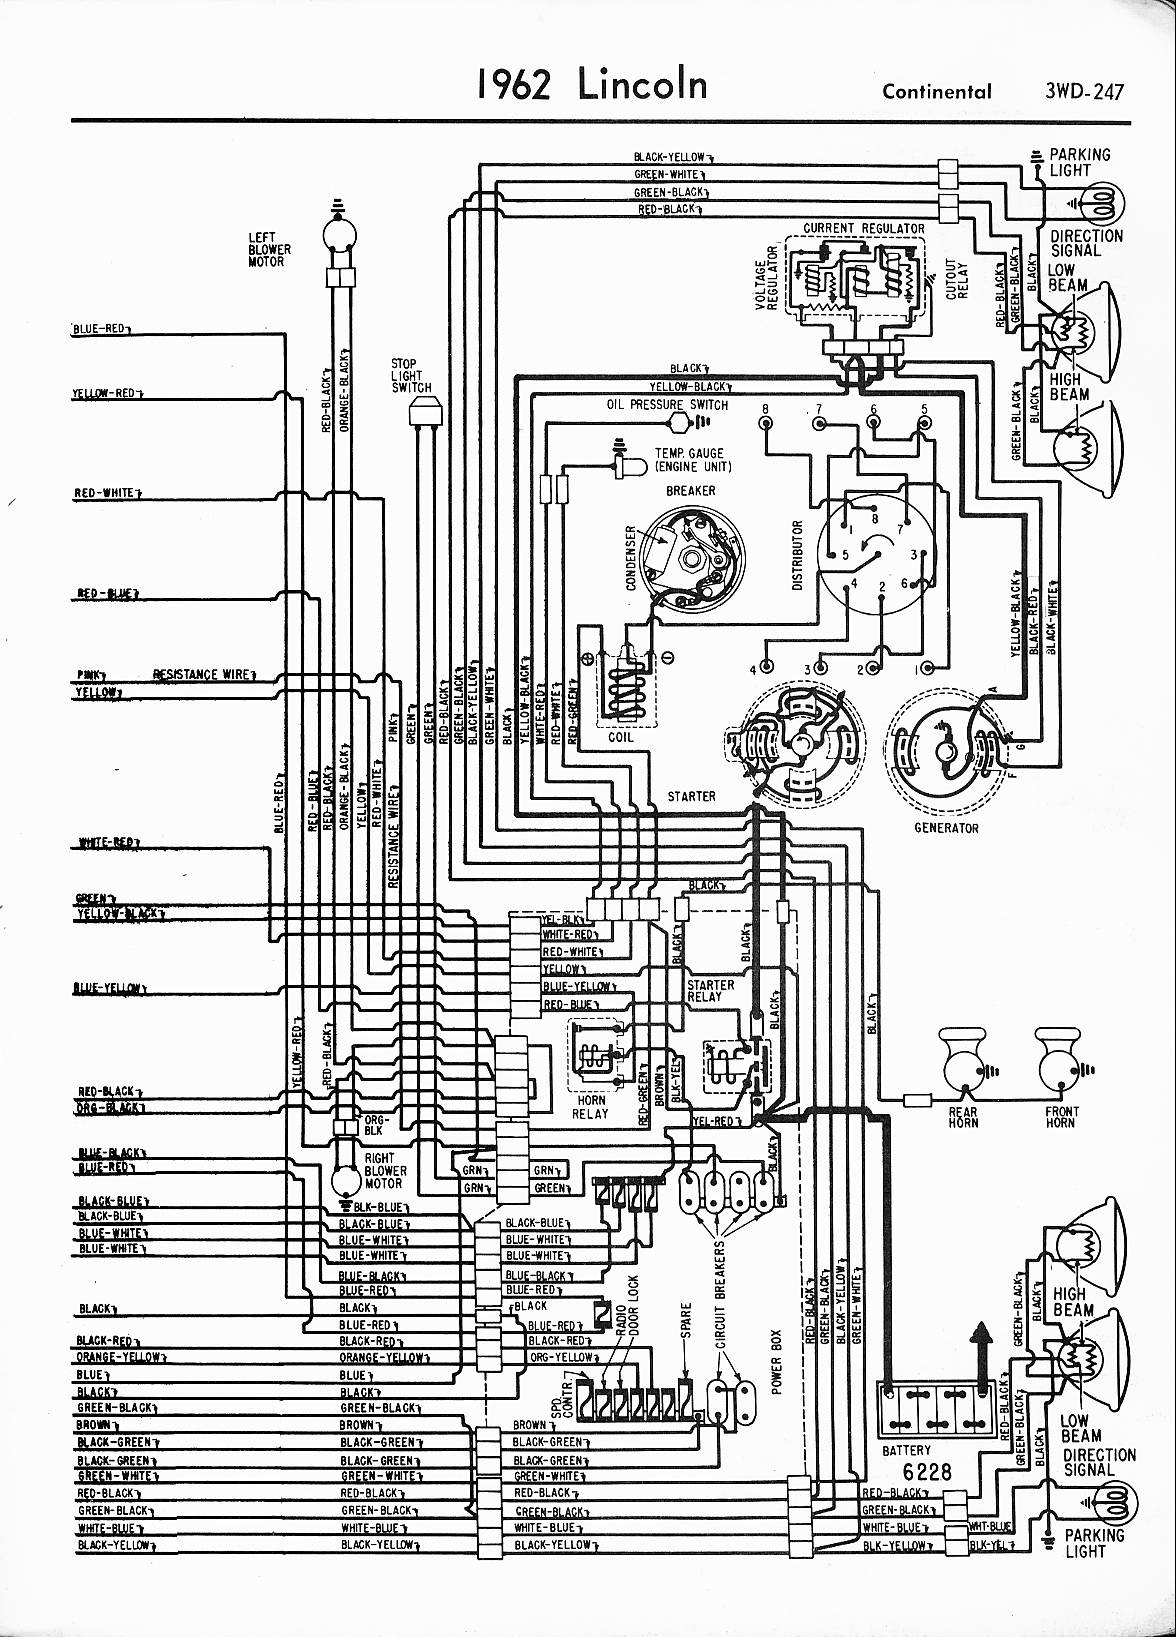 Lincoln Wiring Diagrams Diagram Data 89 Toyota Pickup 1957 1965 Automotive 1989 1962 Left Half